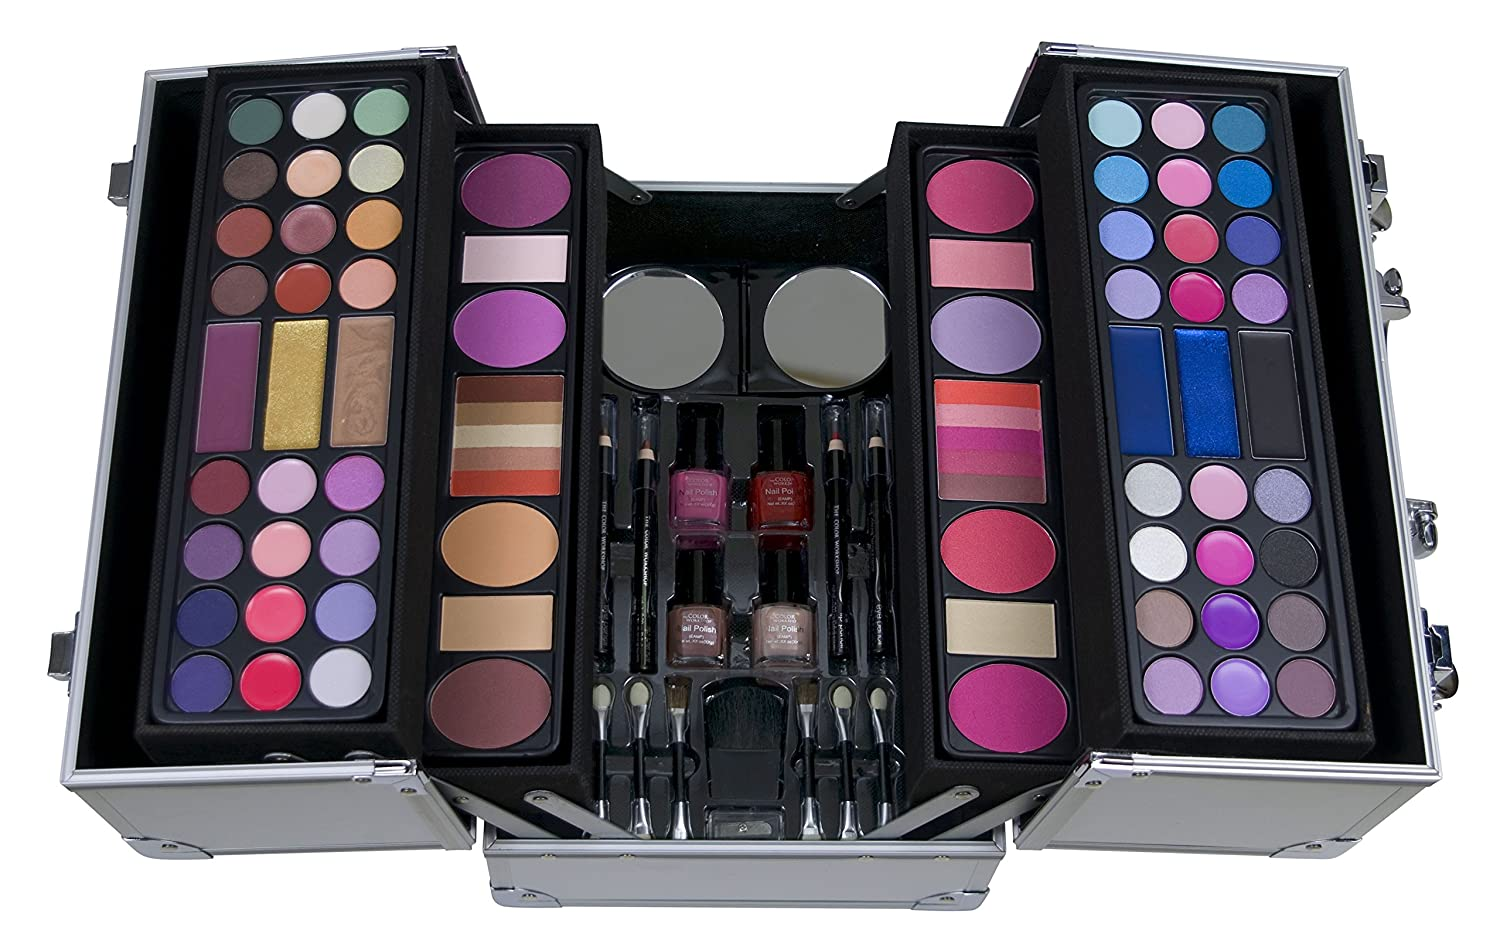 THE COLOR WORKSHOP Mallette de Maquillage Professional Colors Coffret Argent 4572110 4038033457214 sku